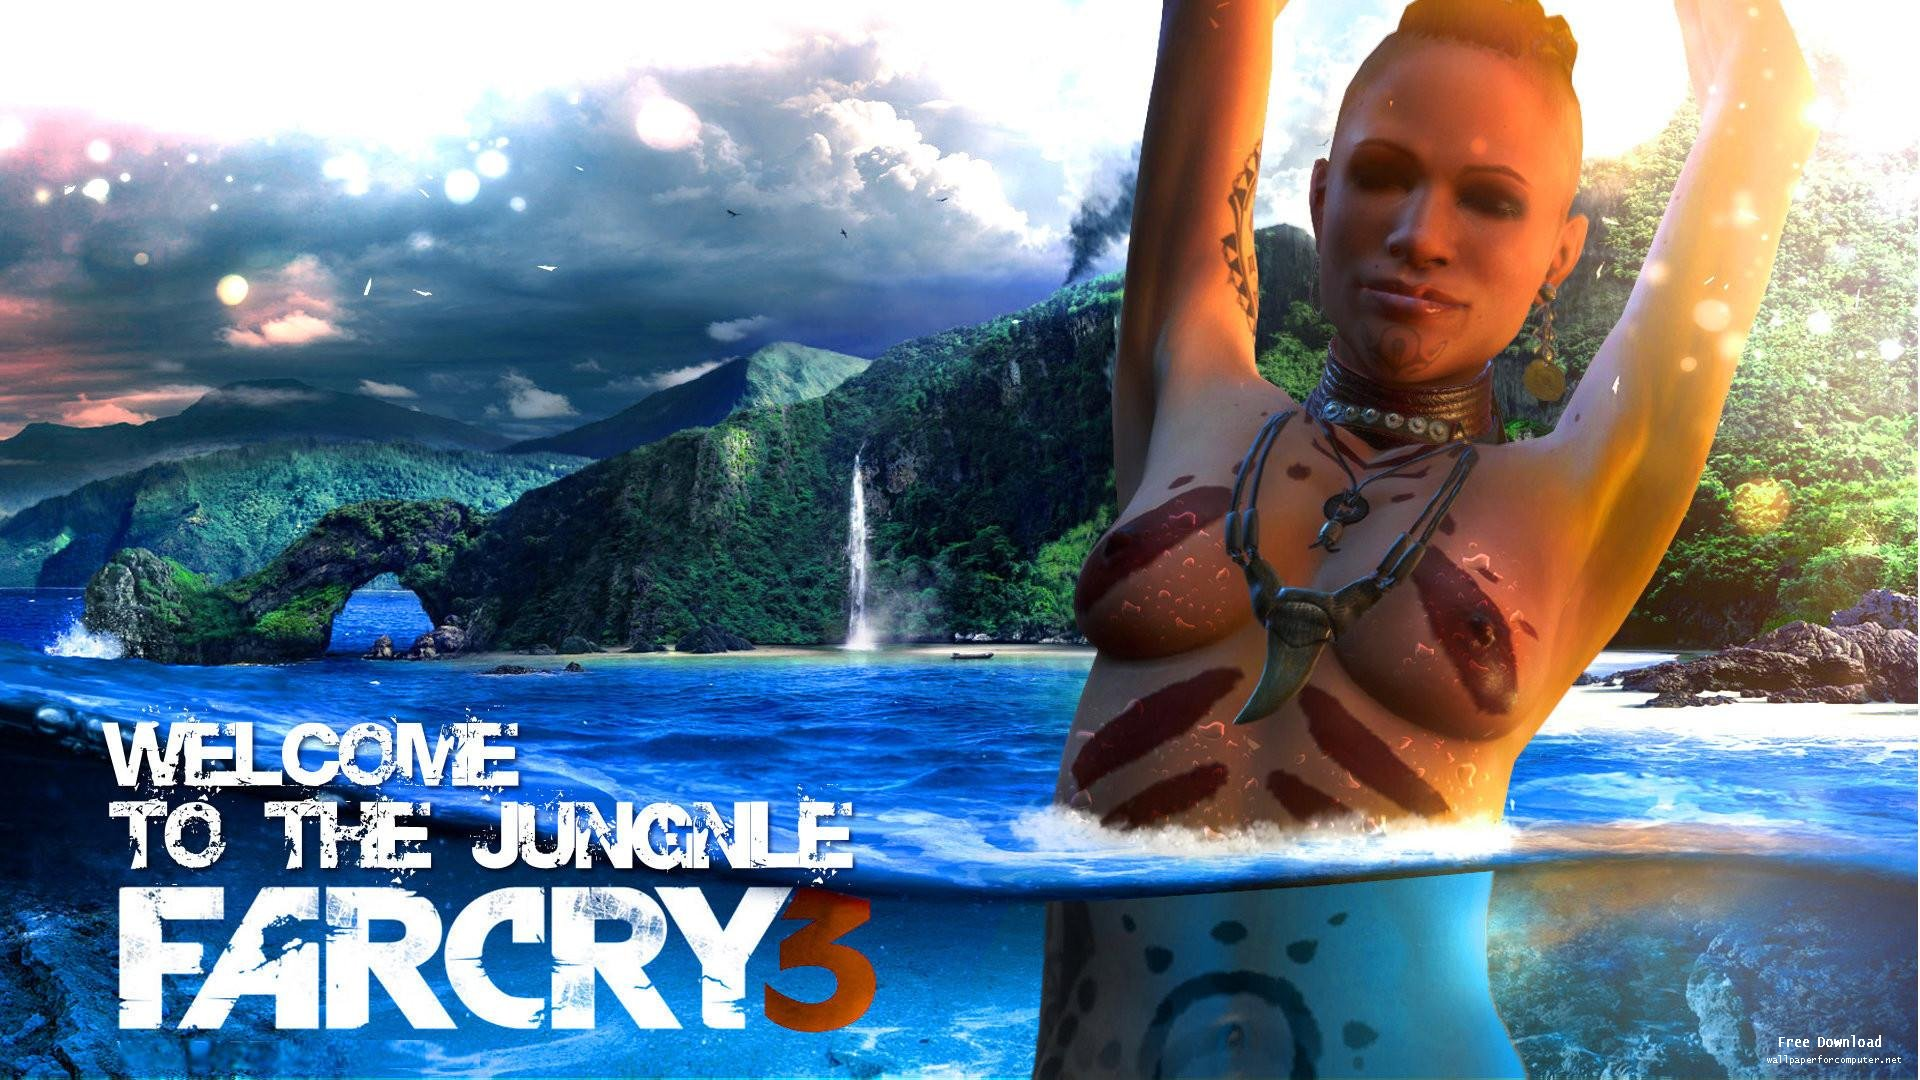 Far cry 3 topless adult photos